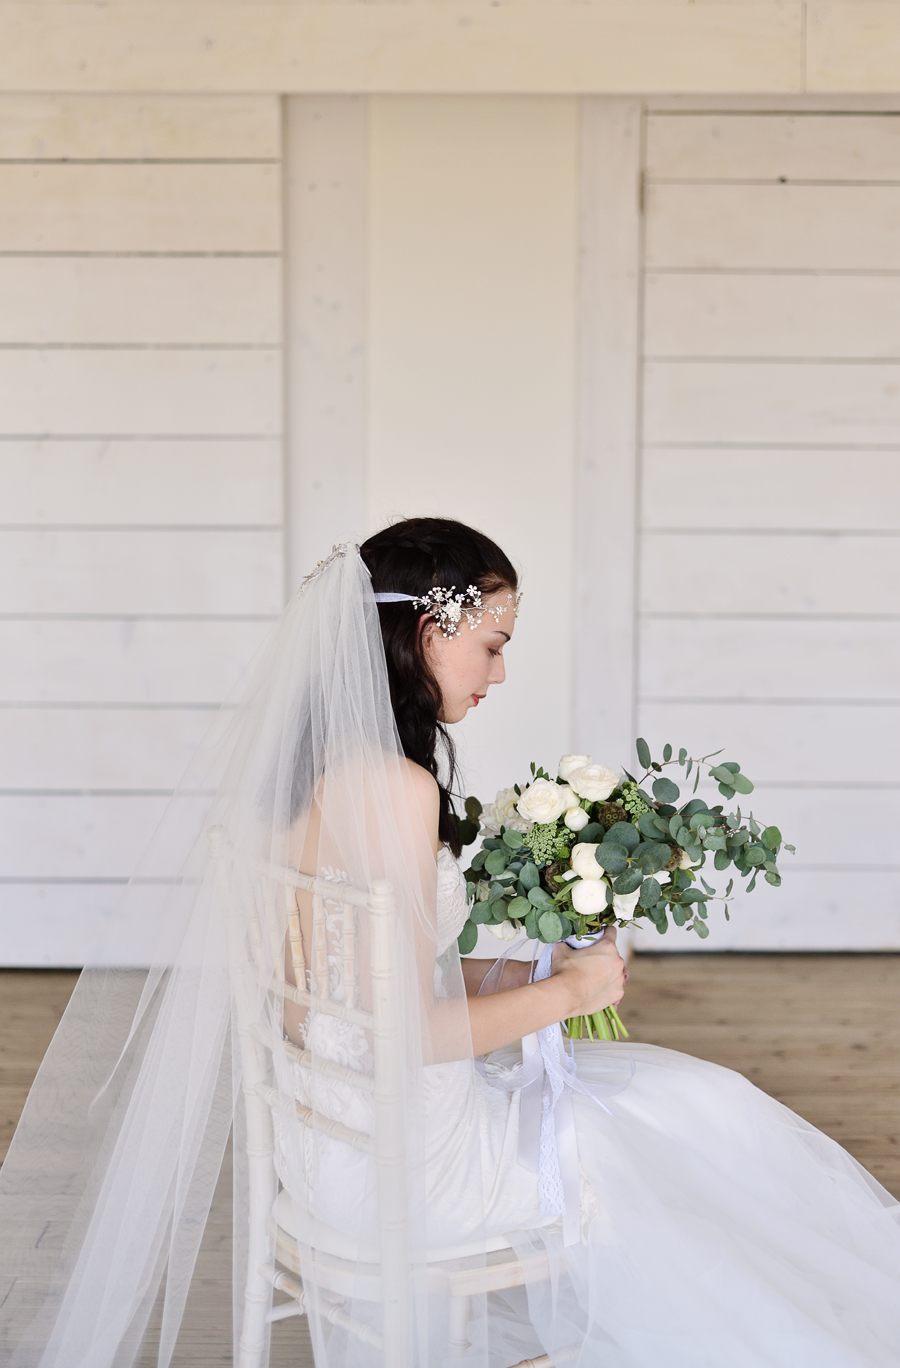 Marina Walker Photography's styled shoot with succulents and affordable details for a minimalist boho wedding (29)